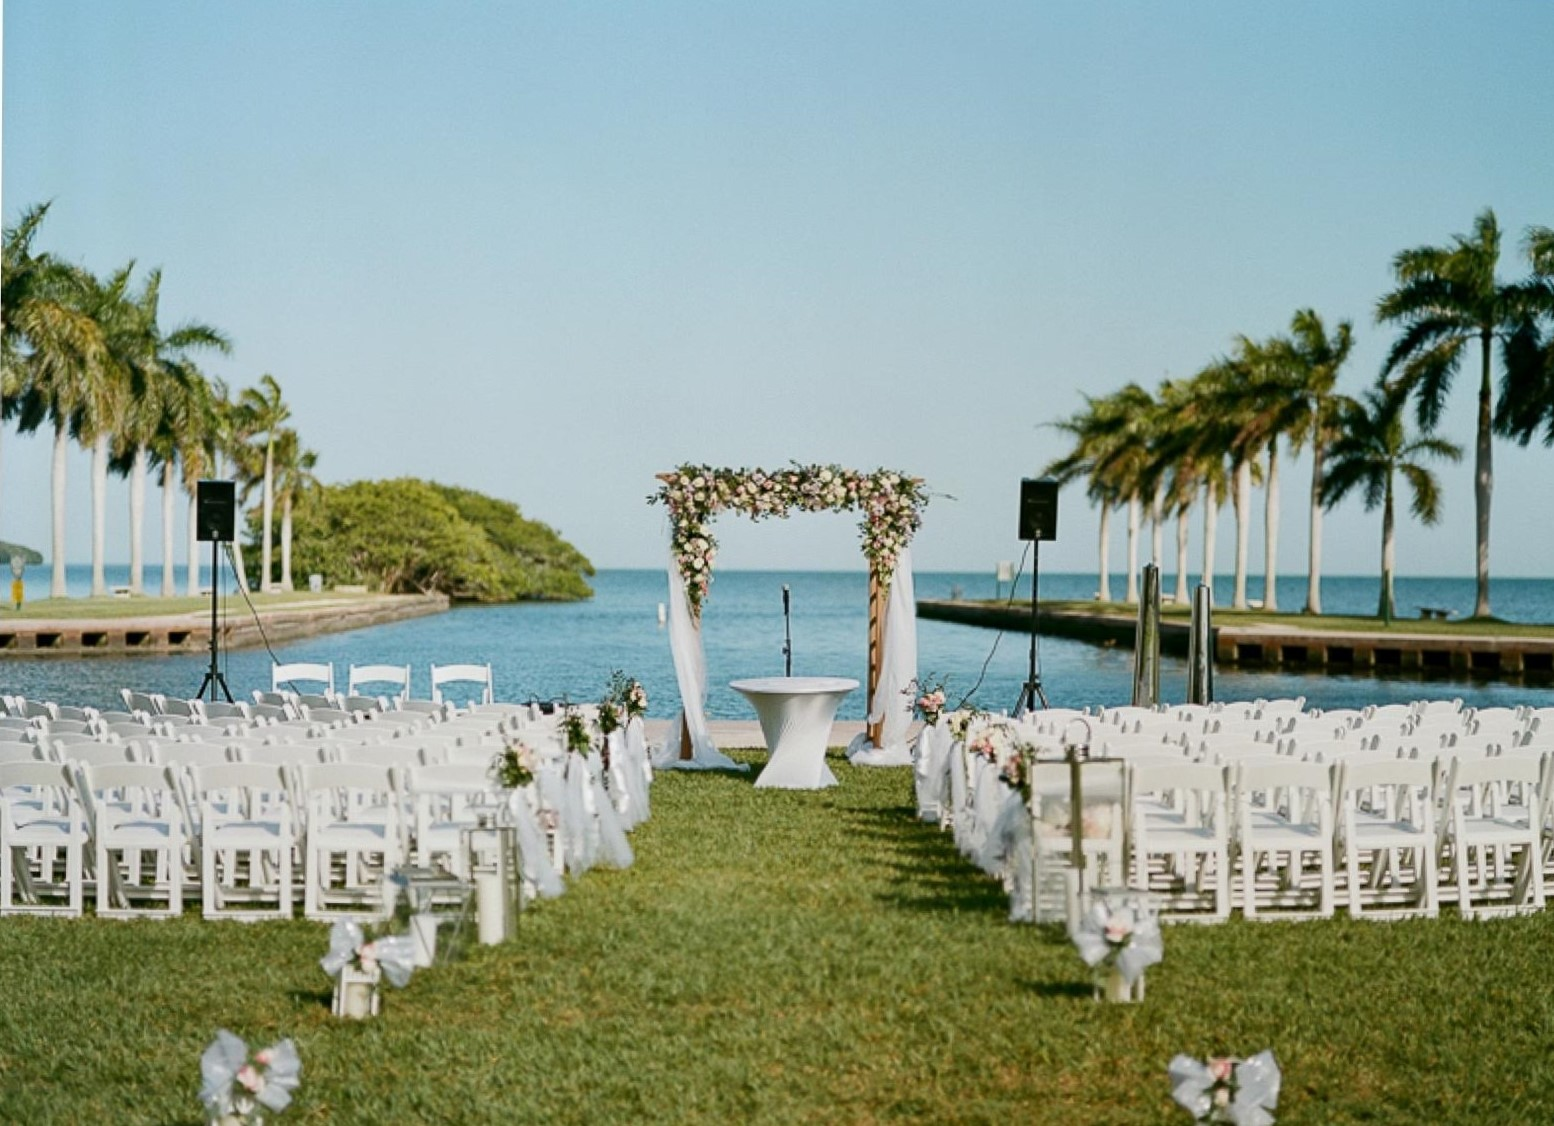 a wedding ceremony setup on the front lawn including an altar and chairs